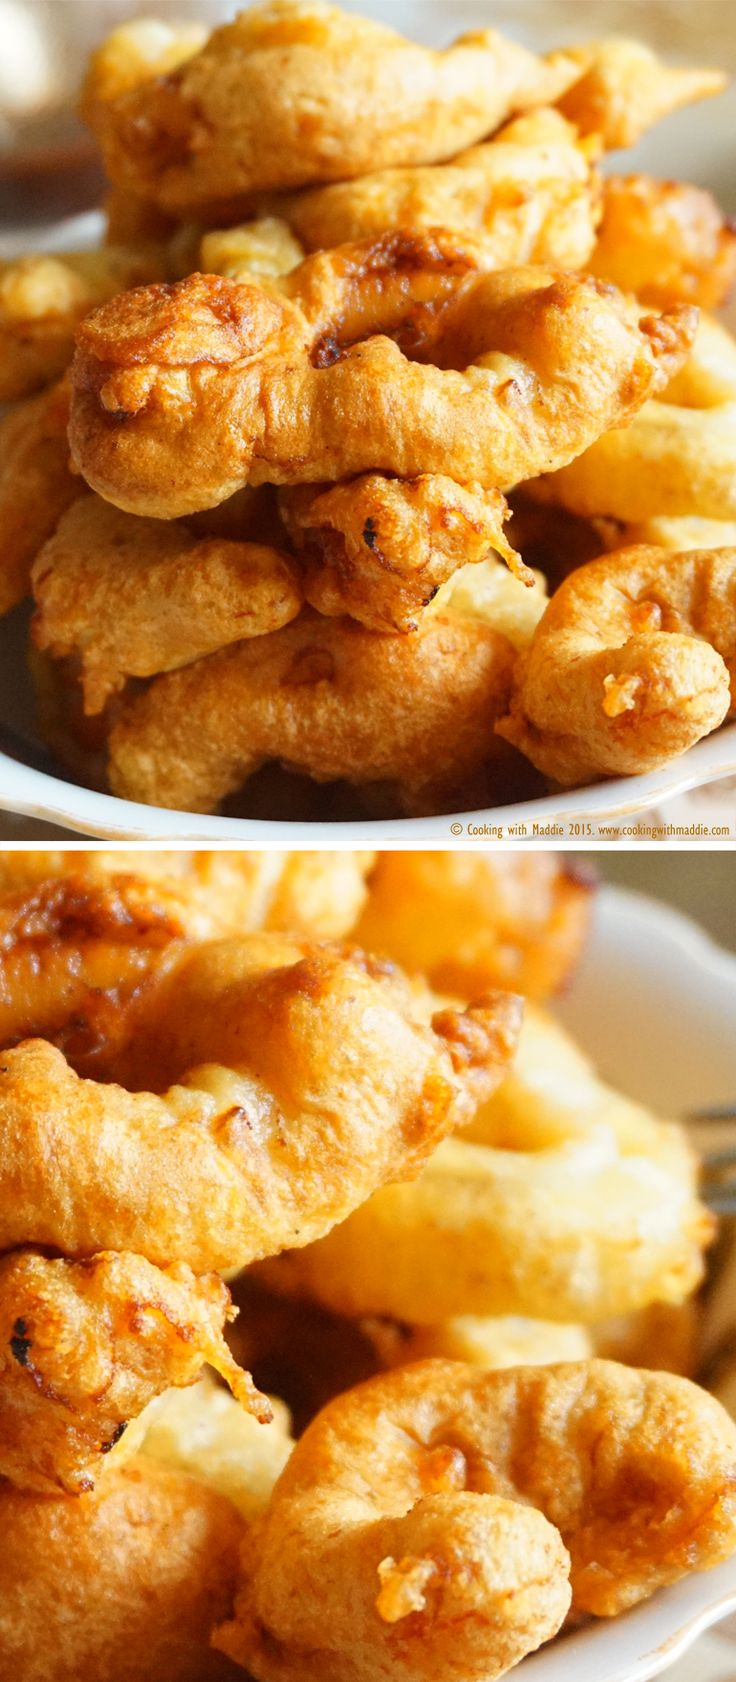 This recipe brings together a perfectly matching couple: the light and crispy batter goes wonderful with the bouncy texture of the shrimp and calamari. You'll love them! @cookingwmaddie